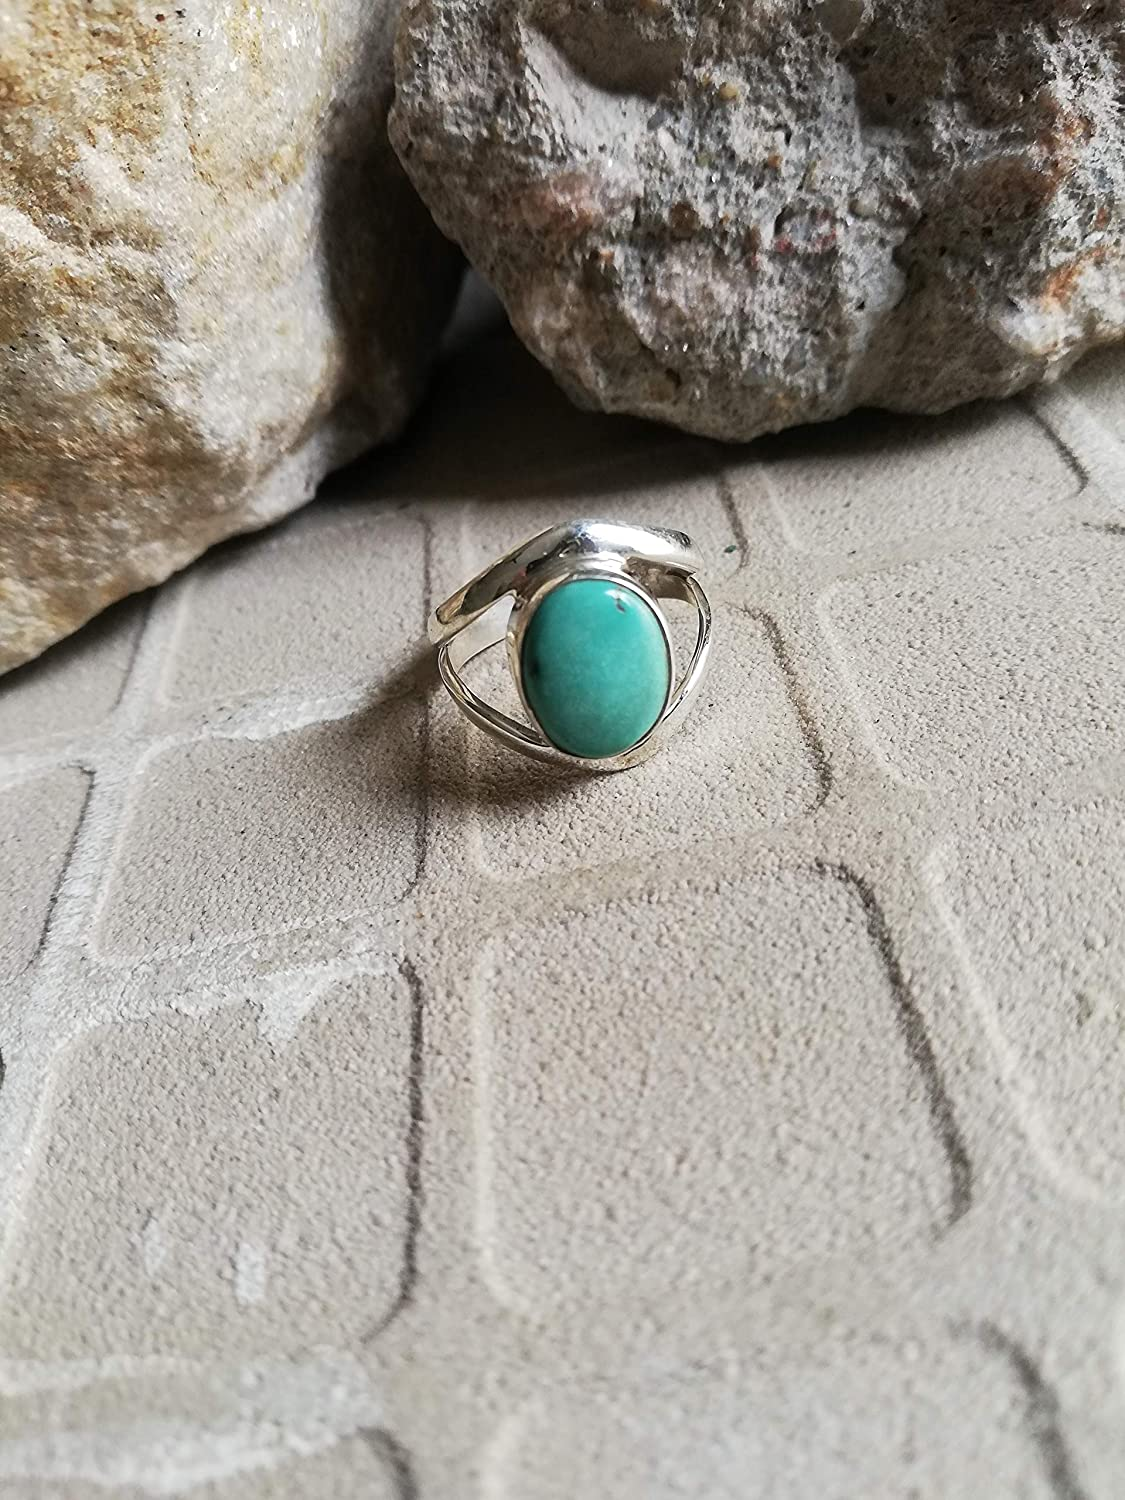 Blue Copper Turquoise Ring, 925 Sterling Silver Ring, Oval Shape Ring, Modern Ring, Trending Ring, Exclusive Ring, Organic Ring, Blue Color Ring, Healing Ring, Vintage Ring, Victorian Ring, Boho Ring, US All Size Ring.......